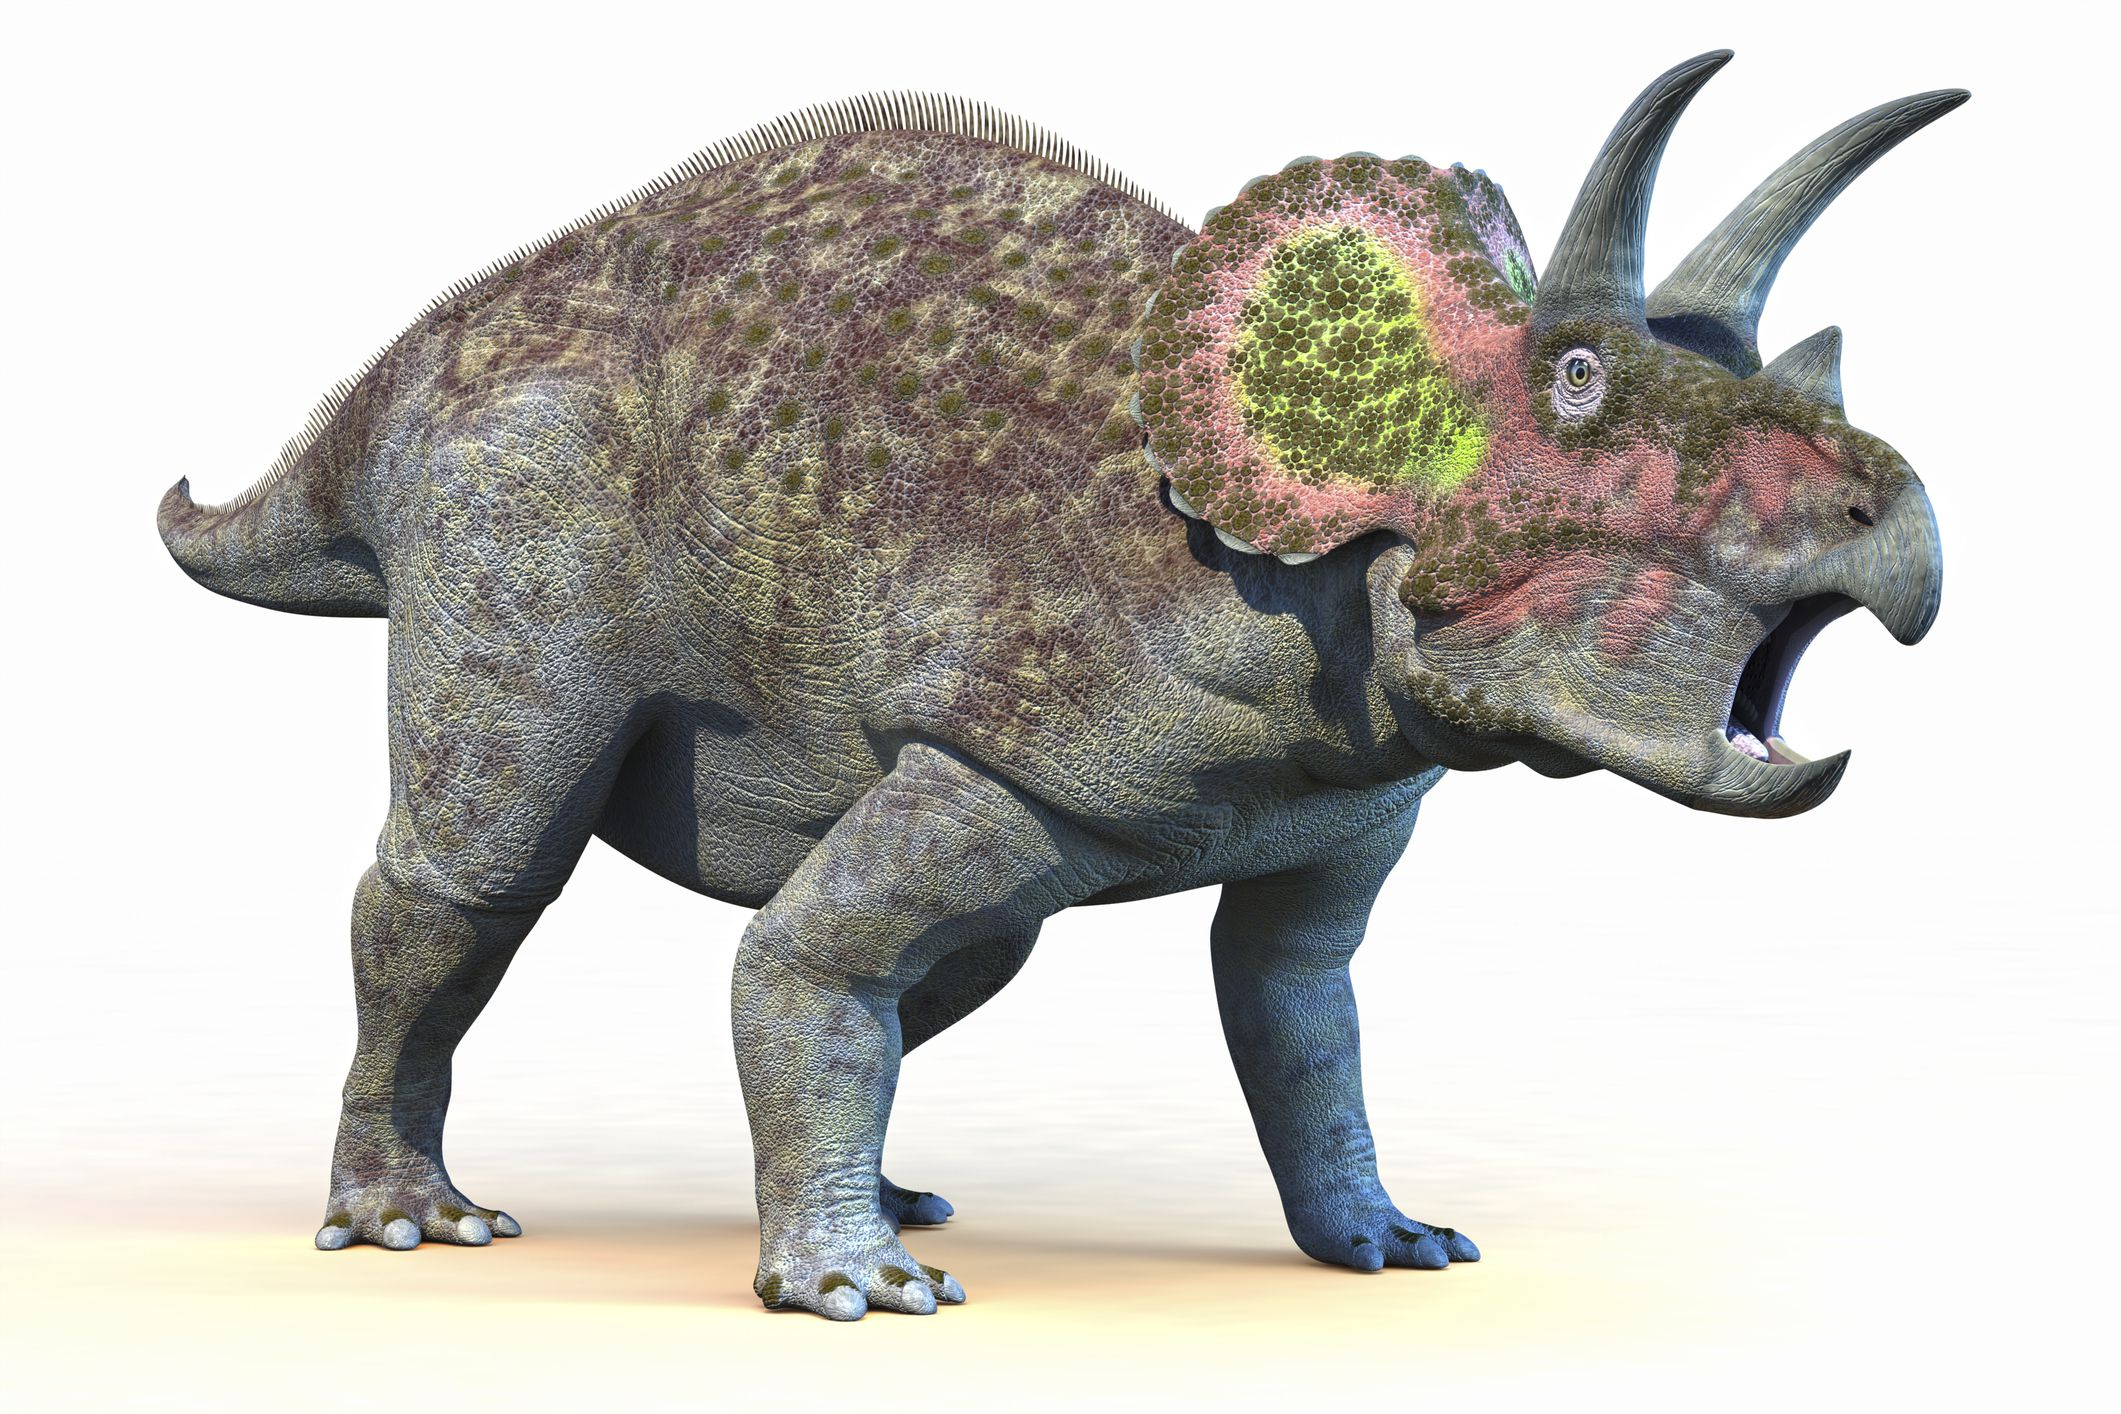 10 intriguing facts about the triceratops